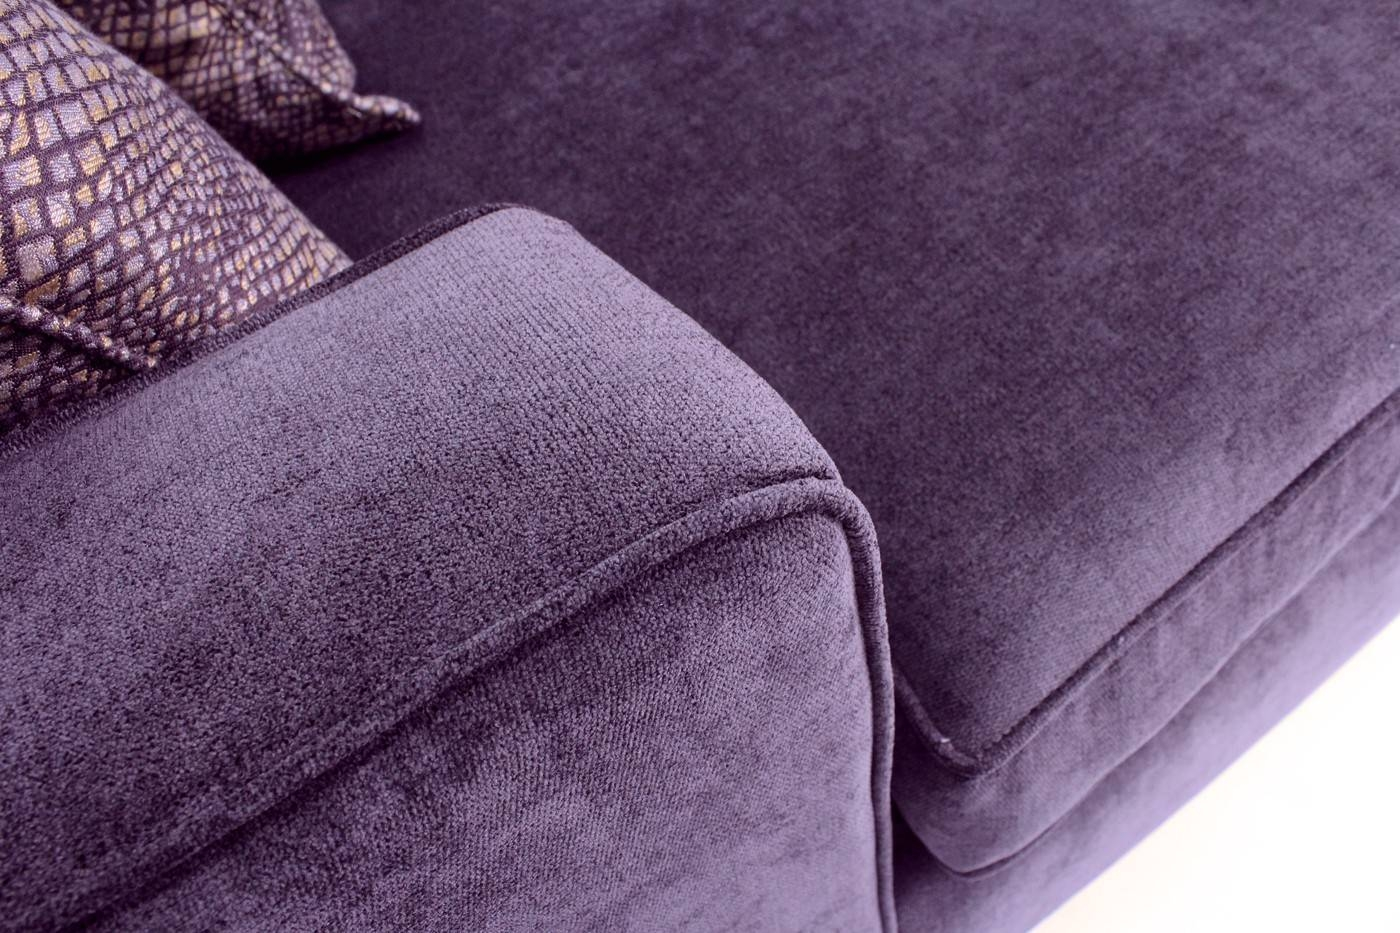 Eggplant Sectional Sofa - Hotelsbacau for Eggplant Sectional Sofa (Image 10 of 30)